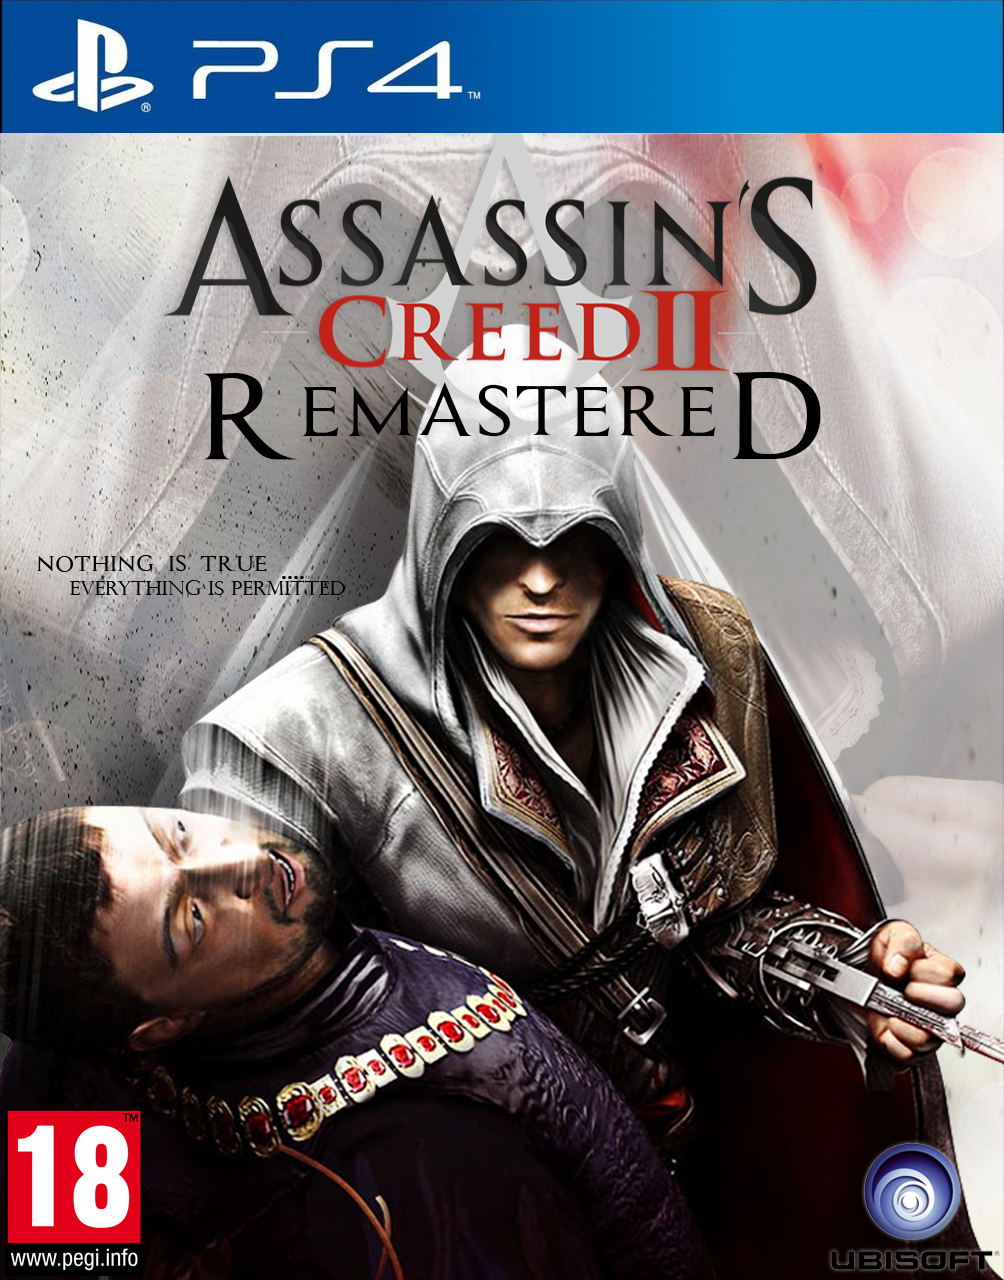 Assassin S Creed Ii Remastered Custom Poster By Megomagdy15 On Deviantart